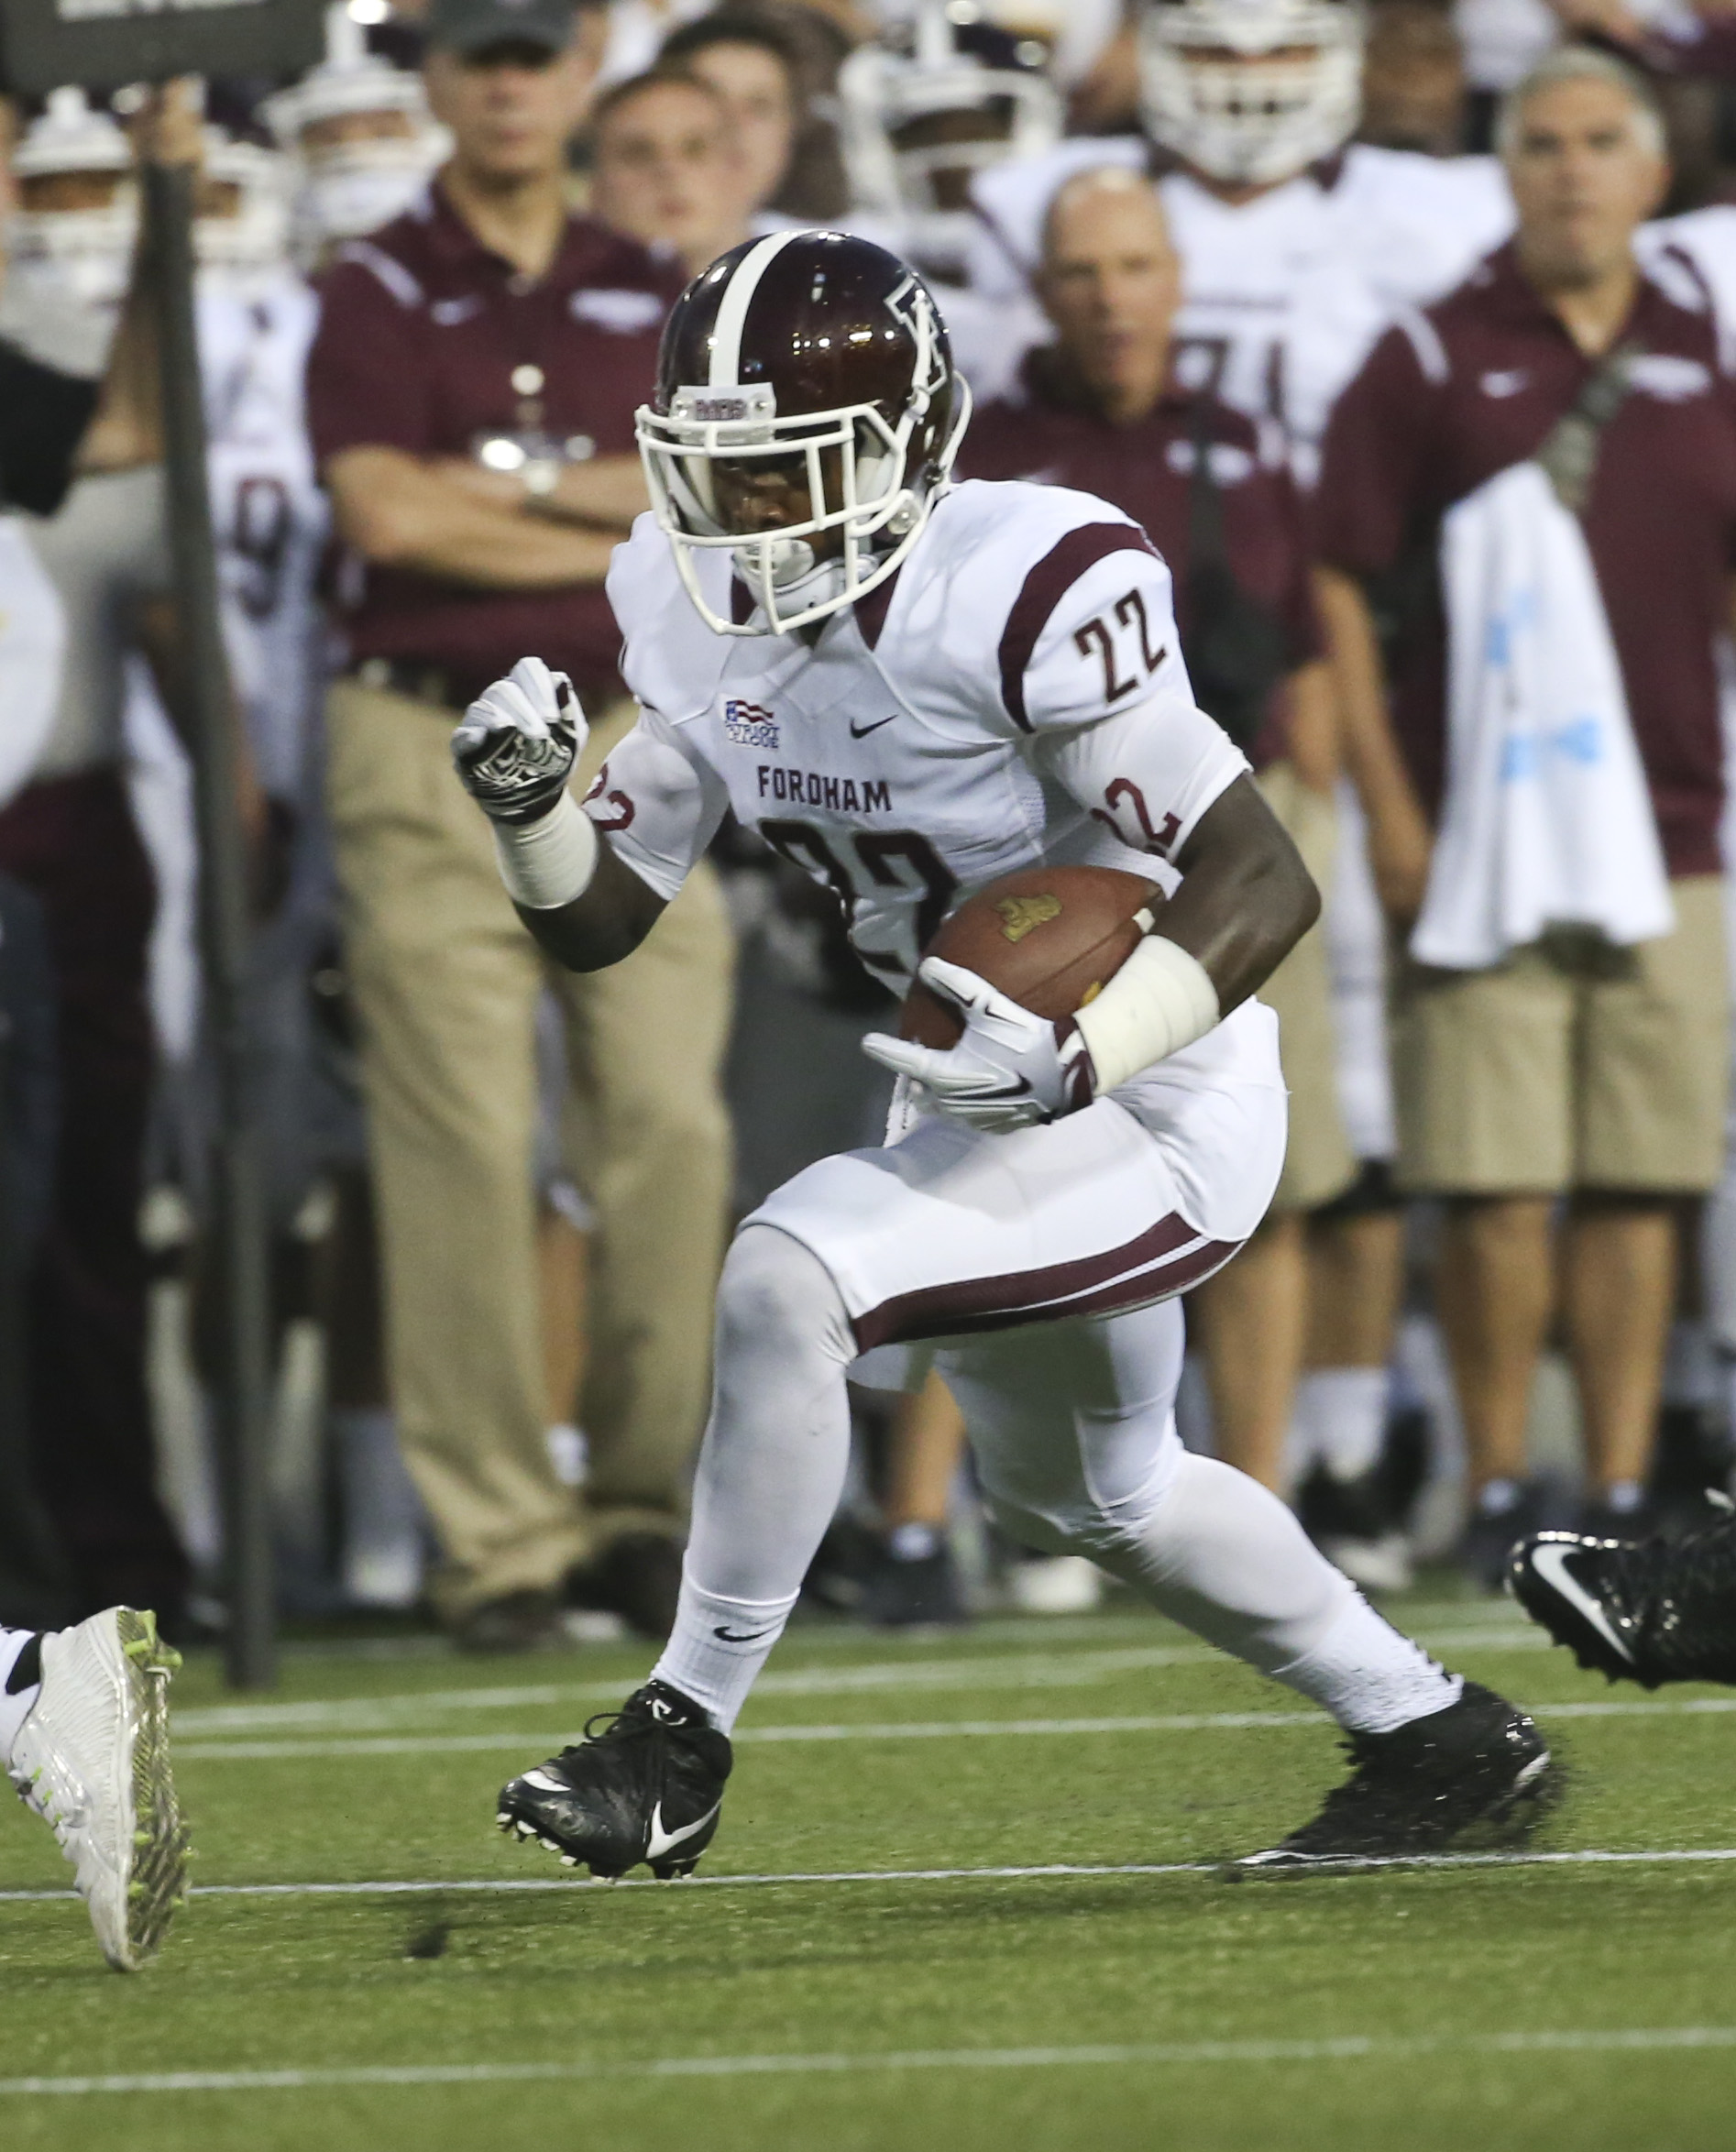 Fordham running back Chase Edmonds (22) runs the ball during the first half of an NCAA college football game against Army on Friday, Sept. 4, 2015, in West Point, N.Y. (AP Photo/Mike Groll)